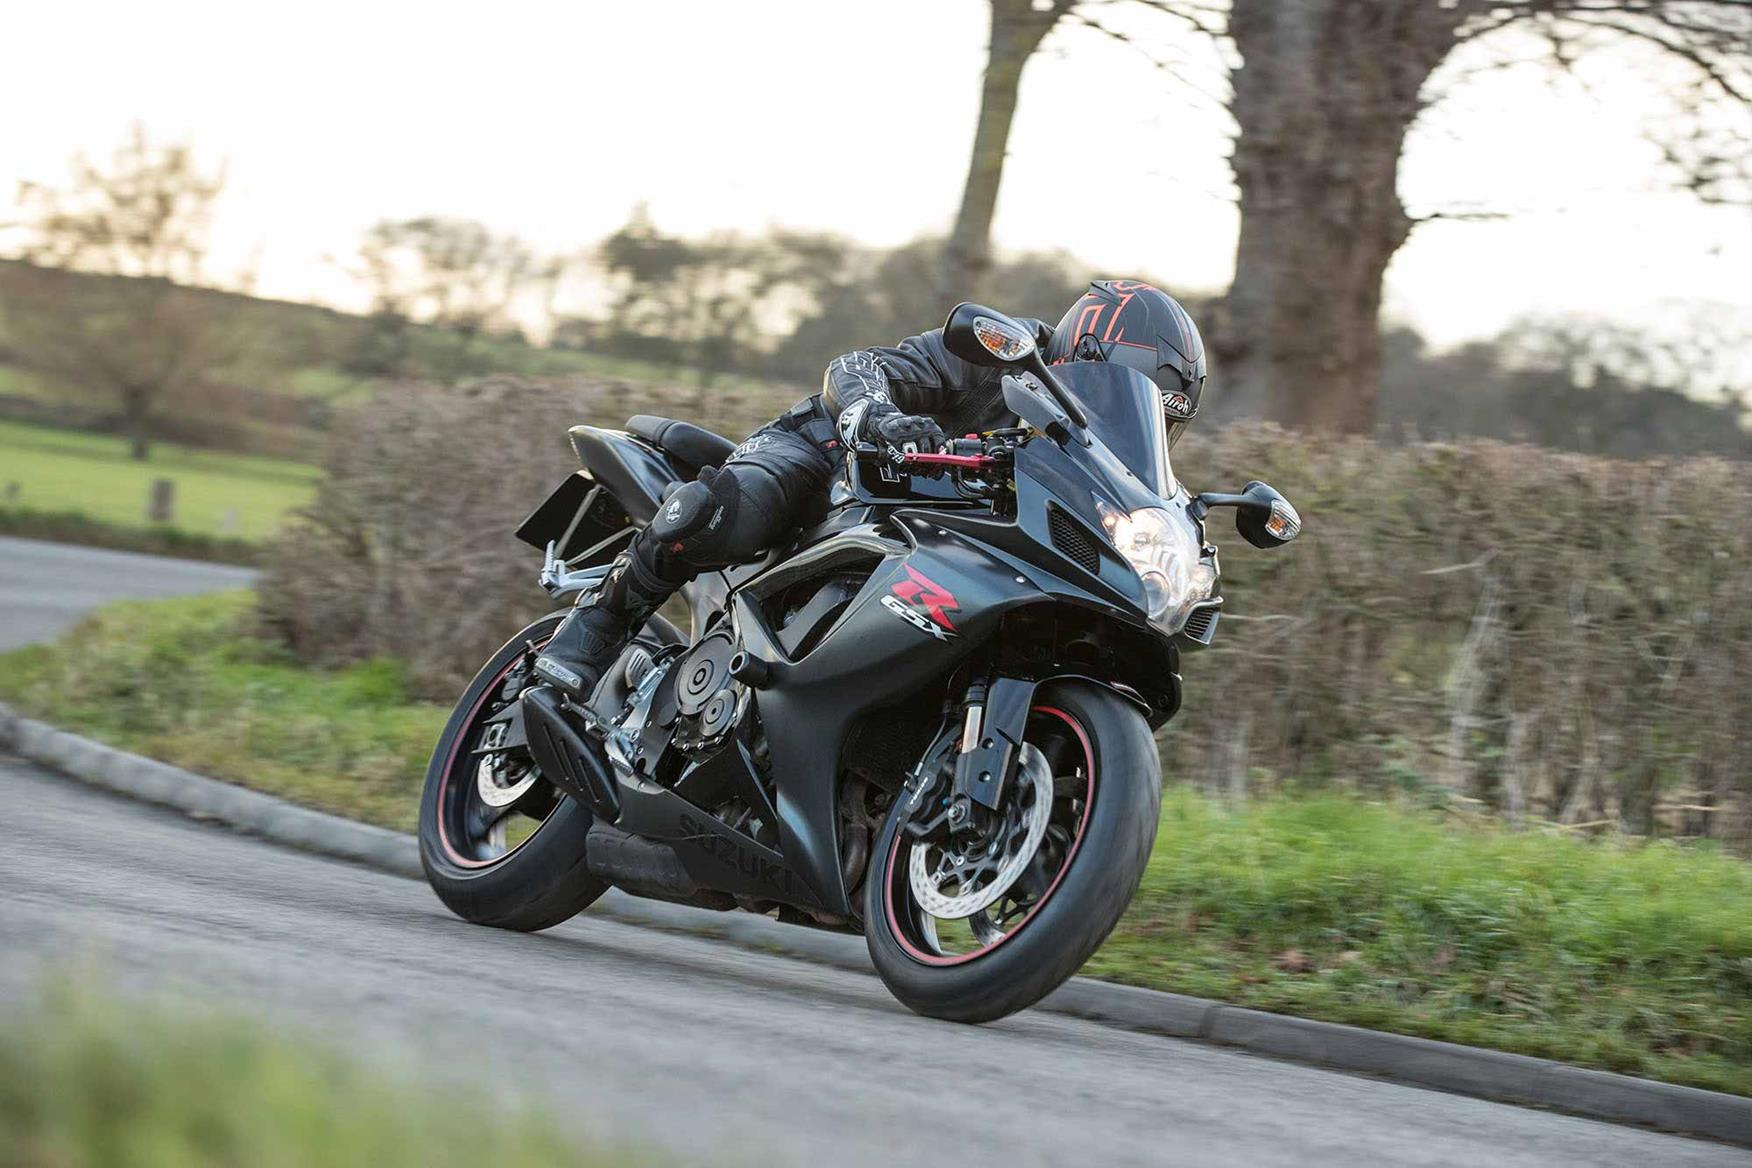 Revisited: 2006-2007 Suzuki GSX-R750